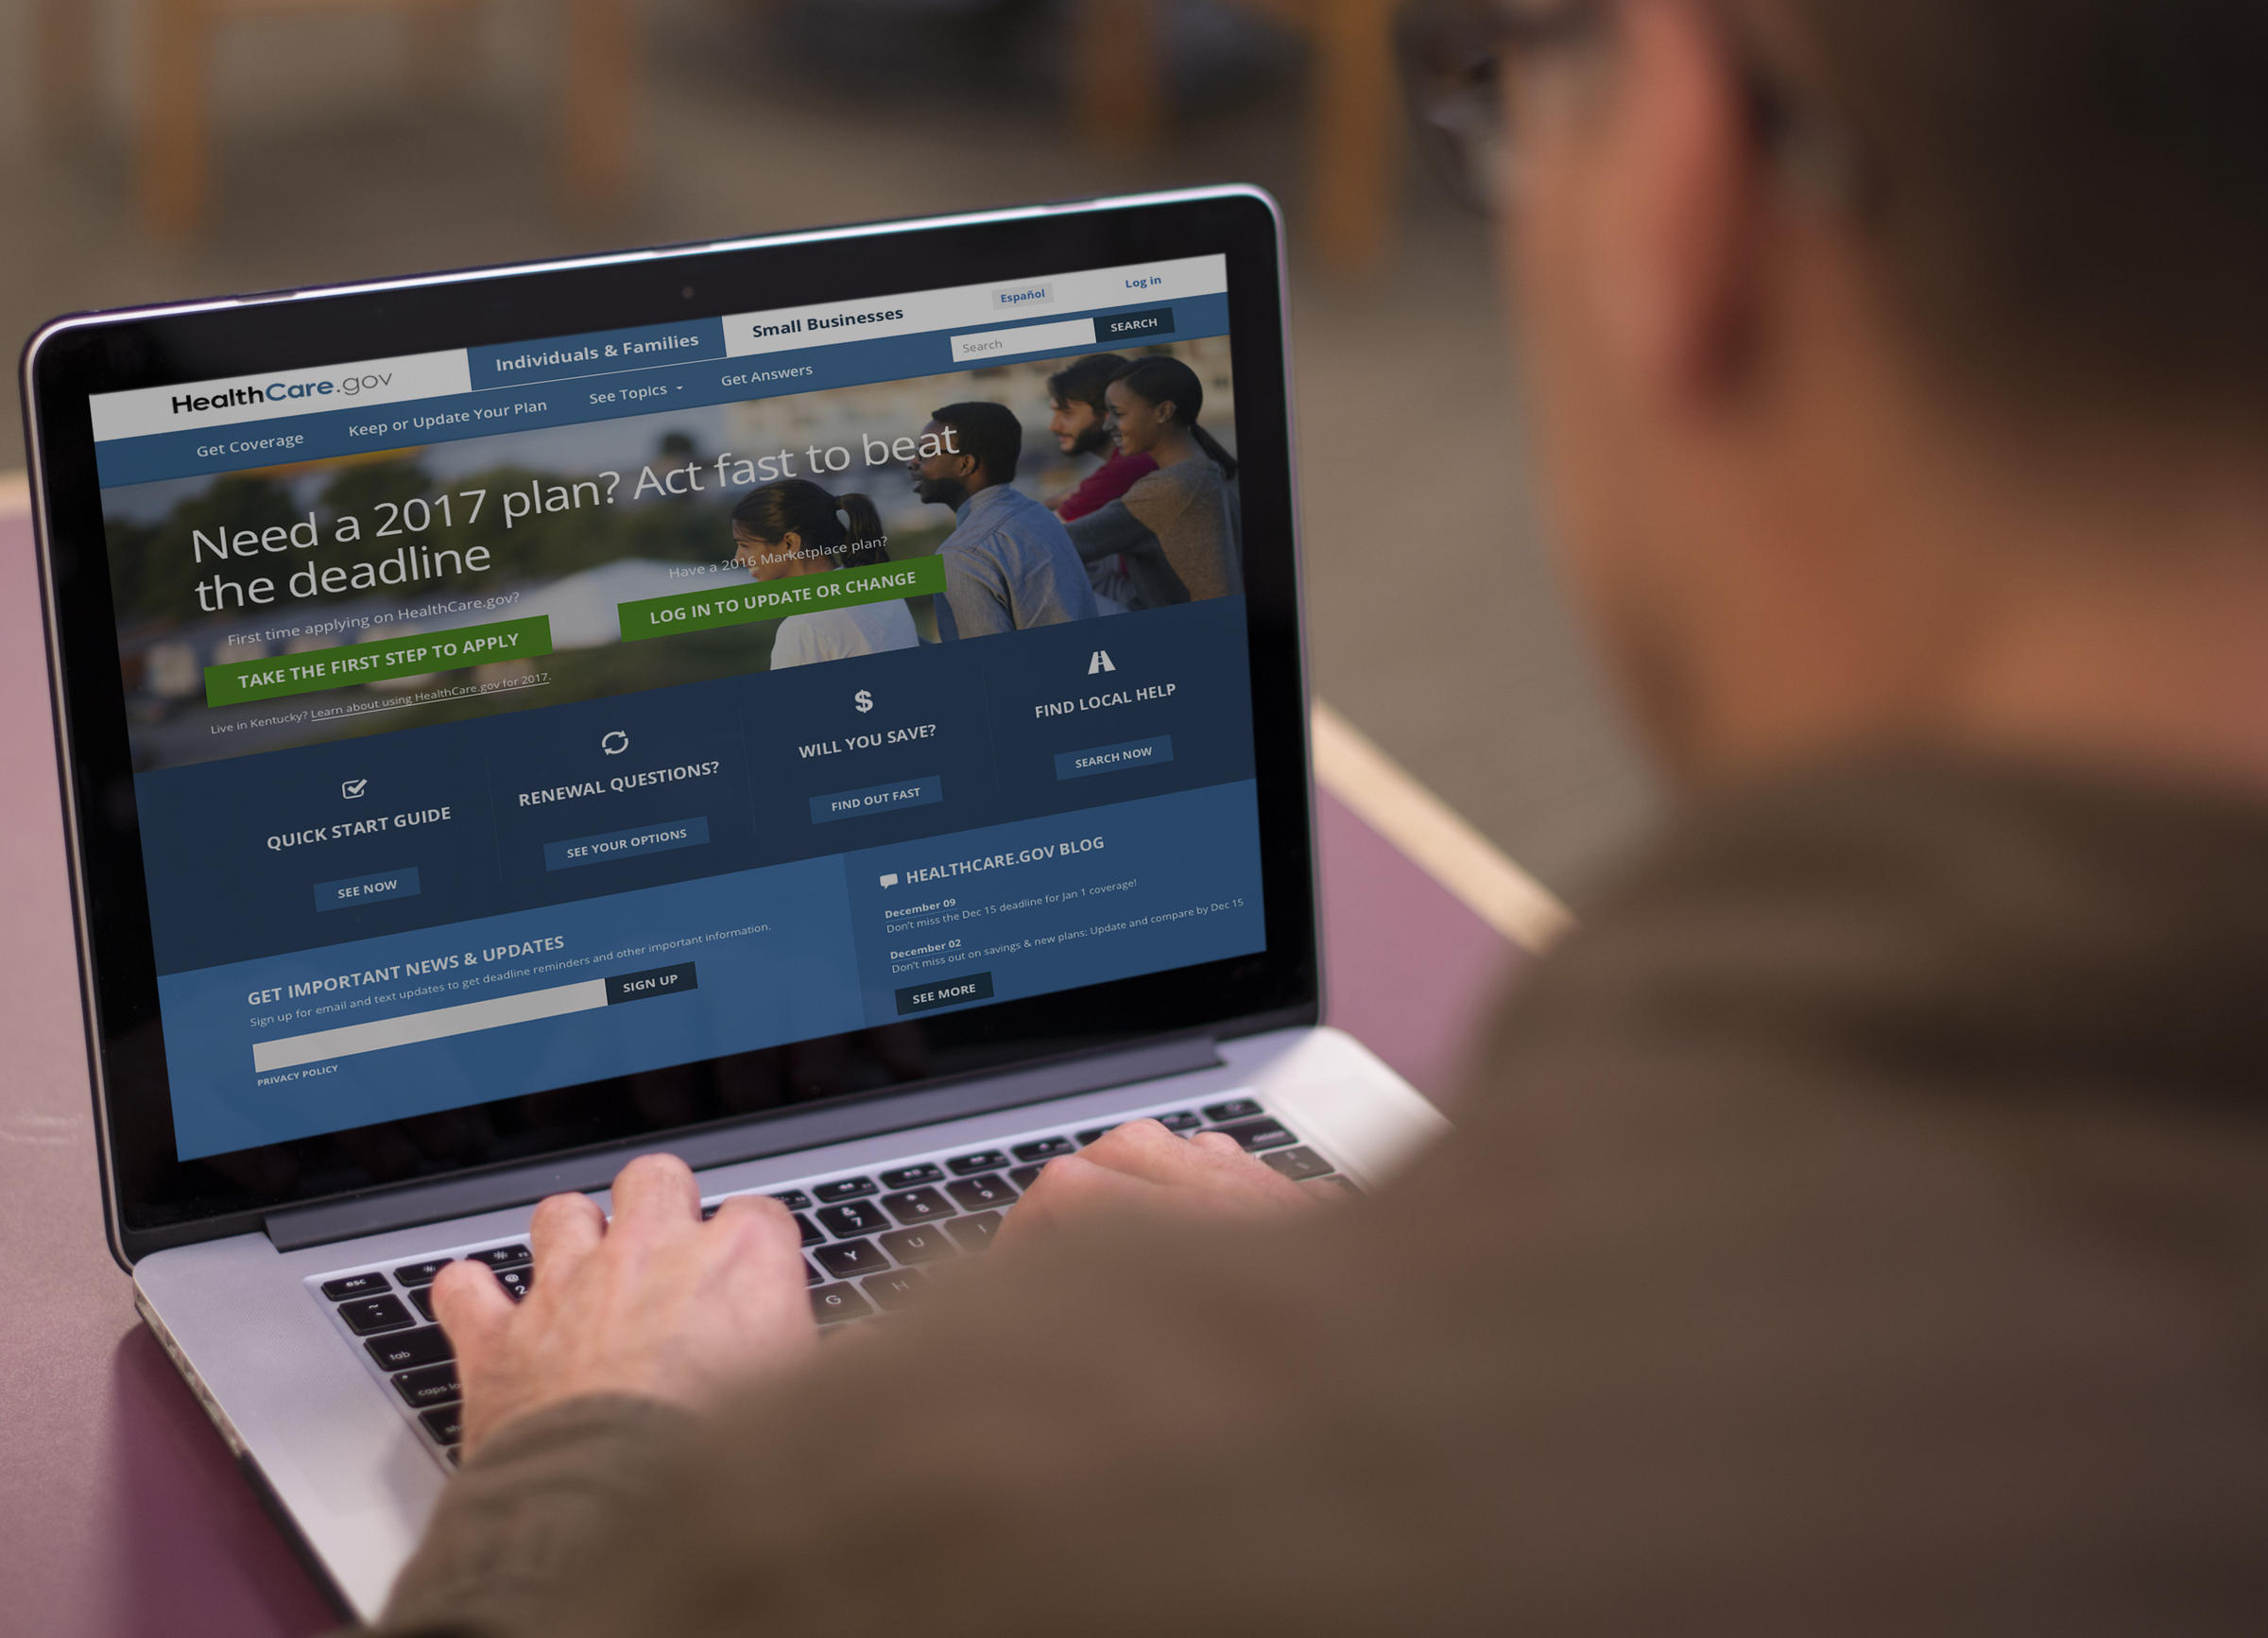 Last day of Obamacare open enrollment sets record in NY